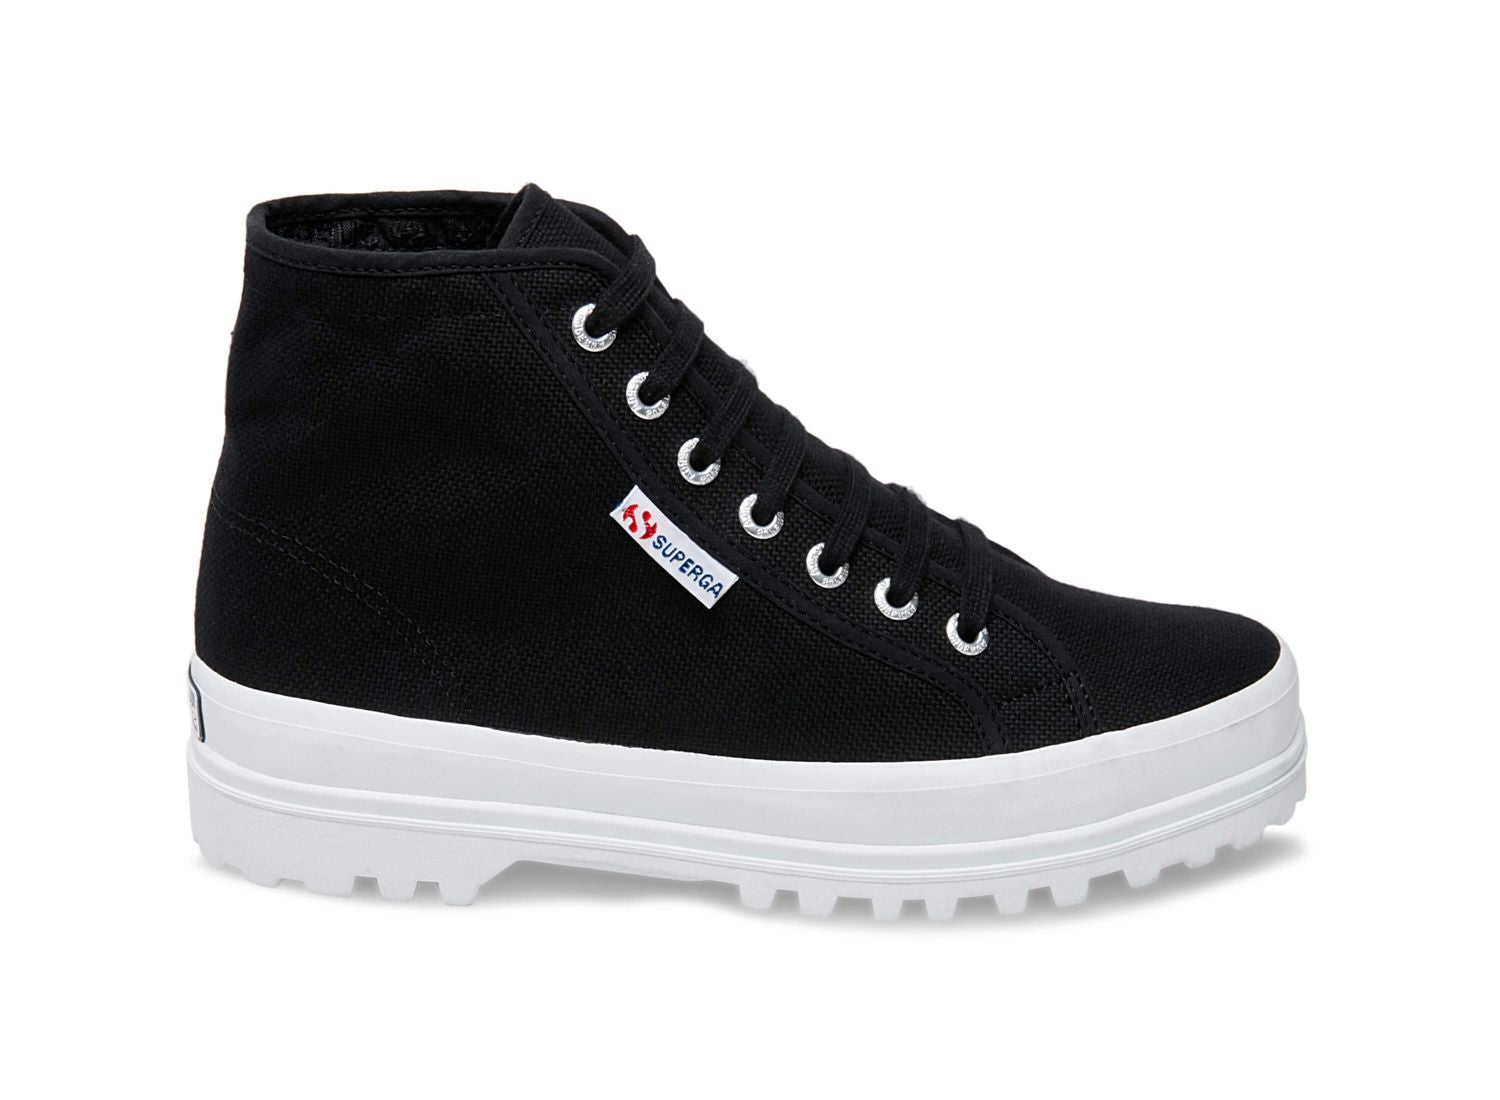 Superga 2553 cotu black side